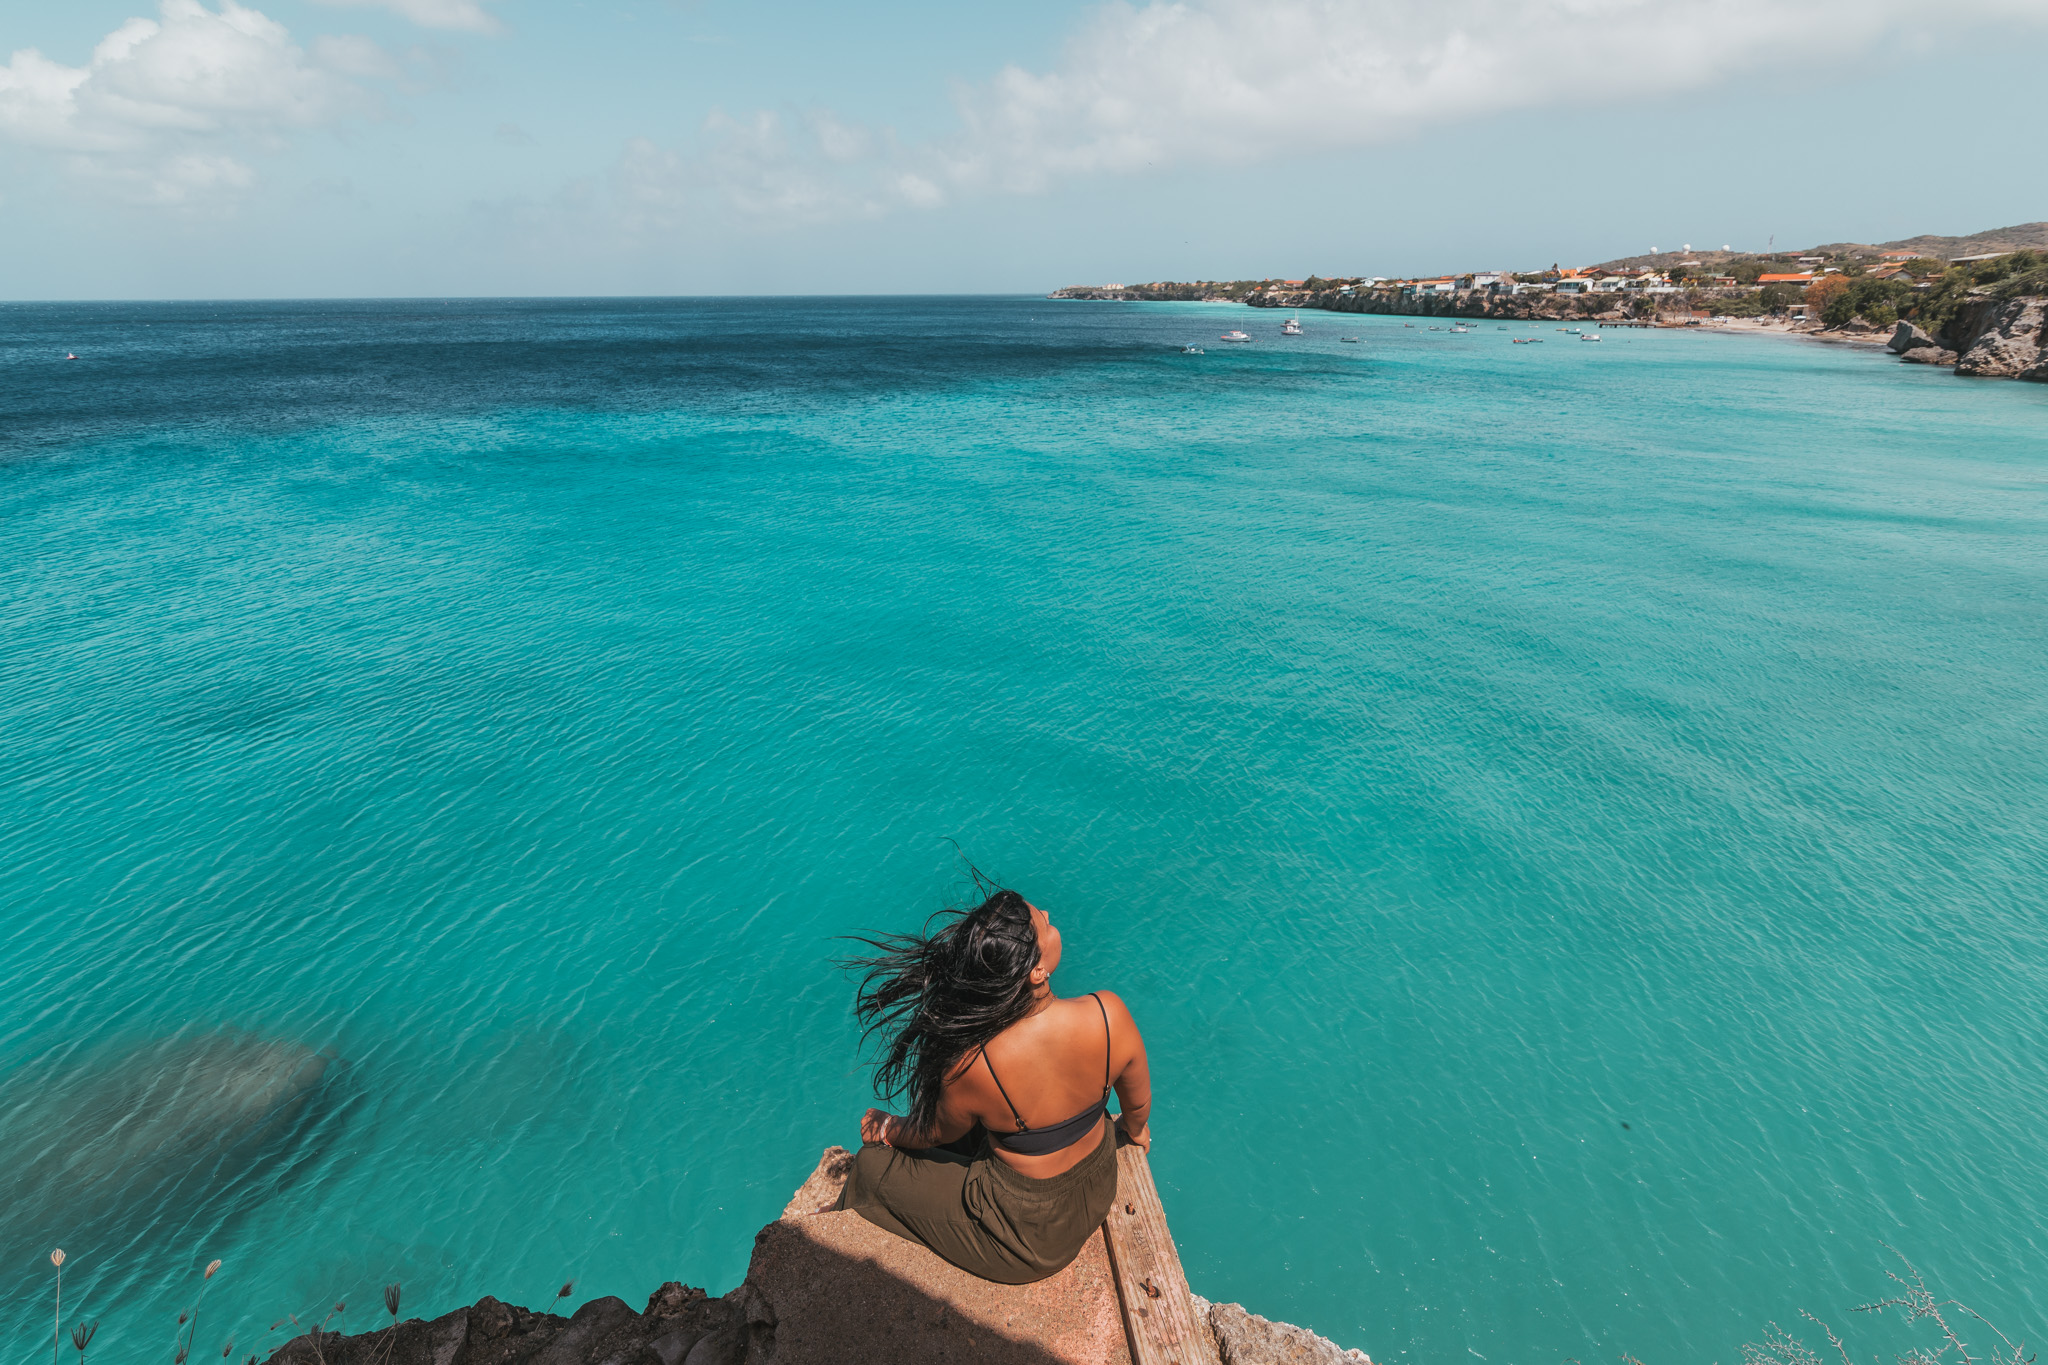 The beautiful turquoise beaches of Curaçao // 20 Photos to Show You Why Curaçao Needs to Be On Your Travel Radar // www.readysetjetset.net #readysetjetset #curacao #caribbean #beach #ocean #paradise #travel